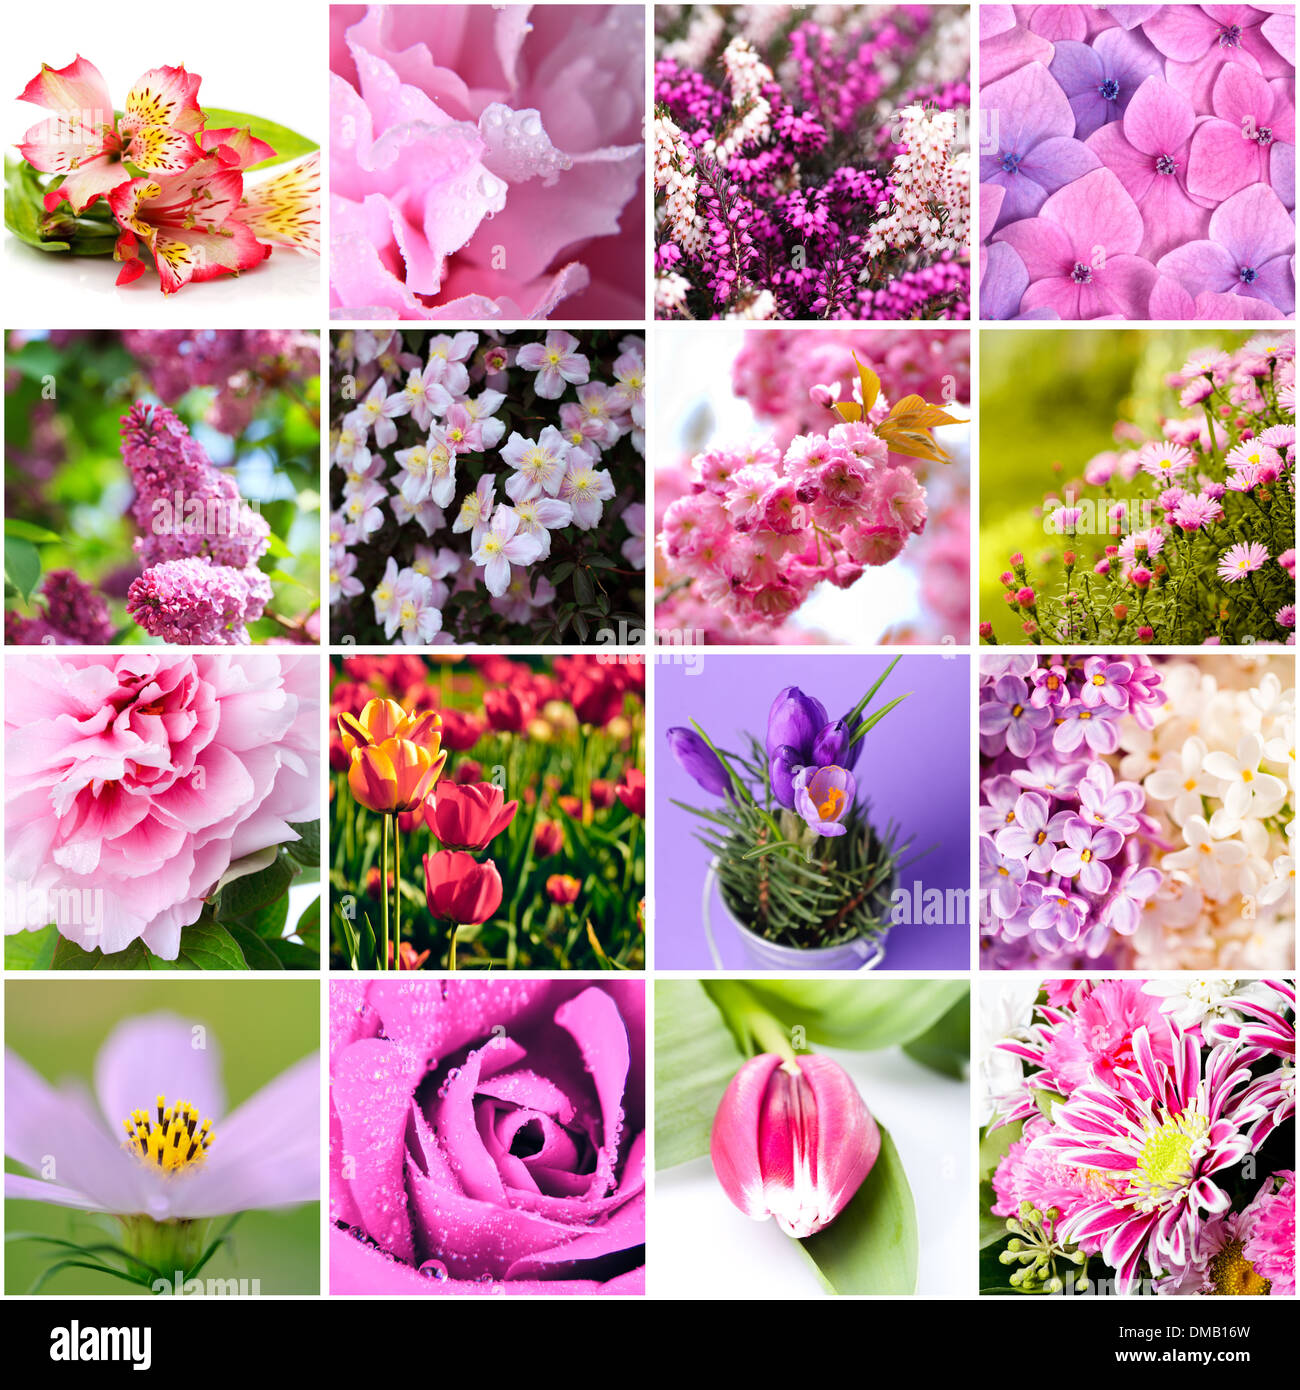 Closeup Beautiful Lilac And Pink Flowers Collage Stock Photo